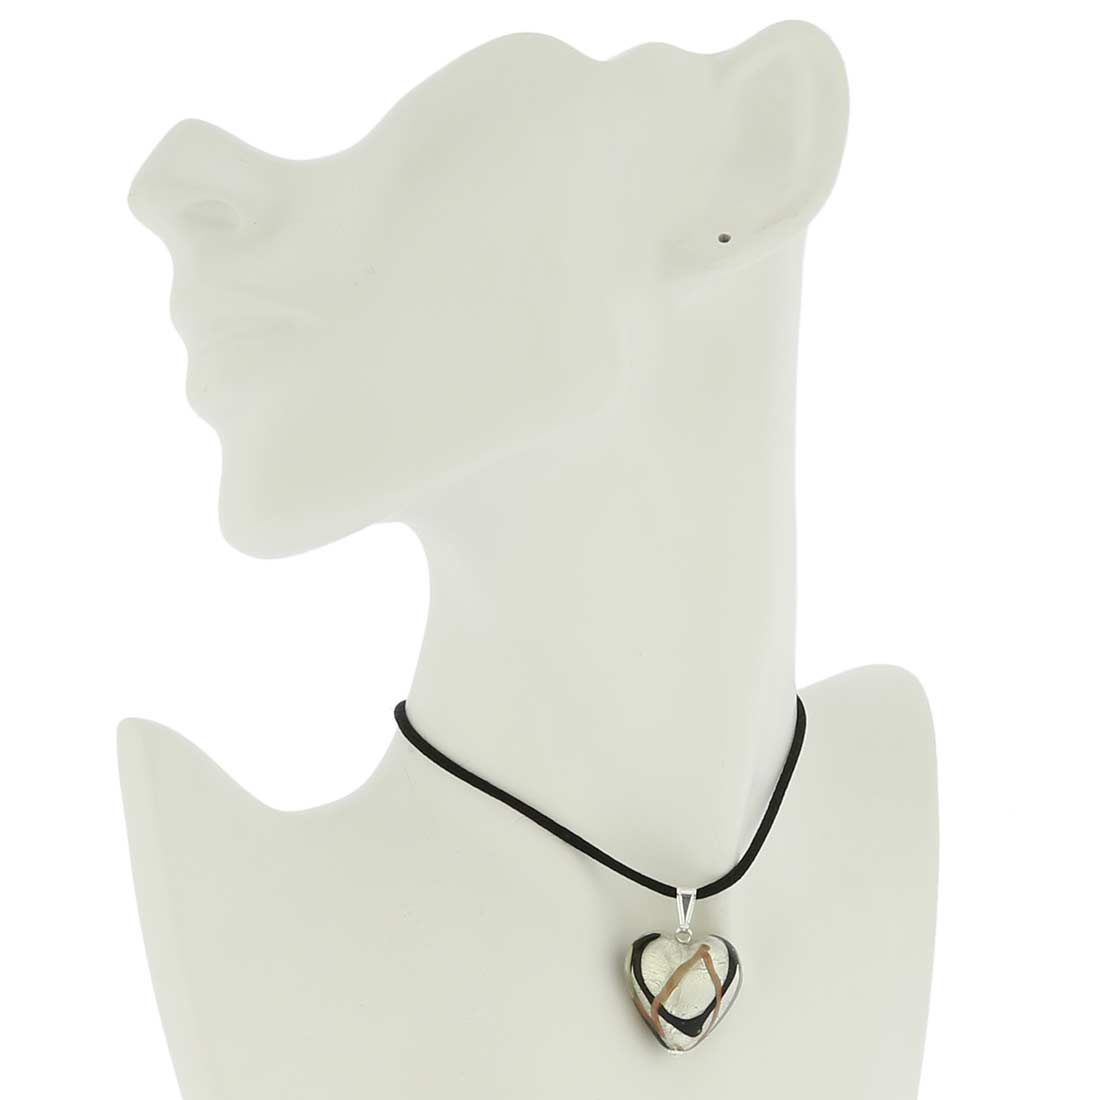 Murano Heart Pendant - Black Waves Silver